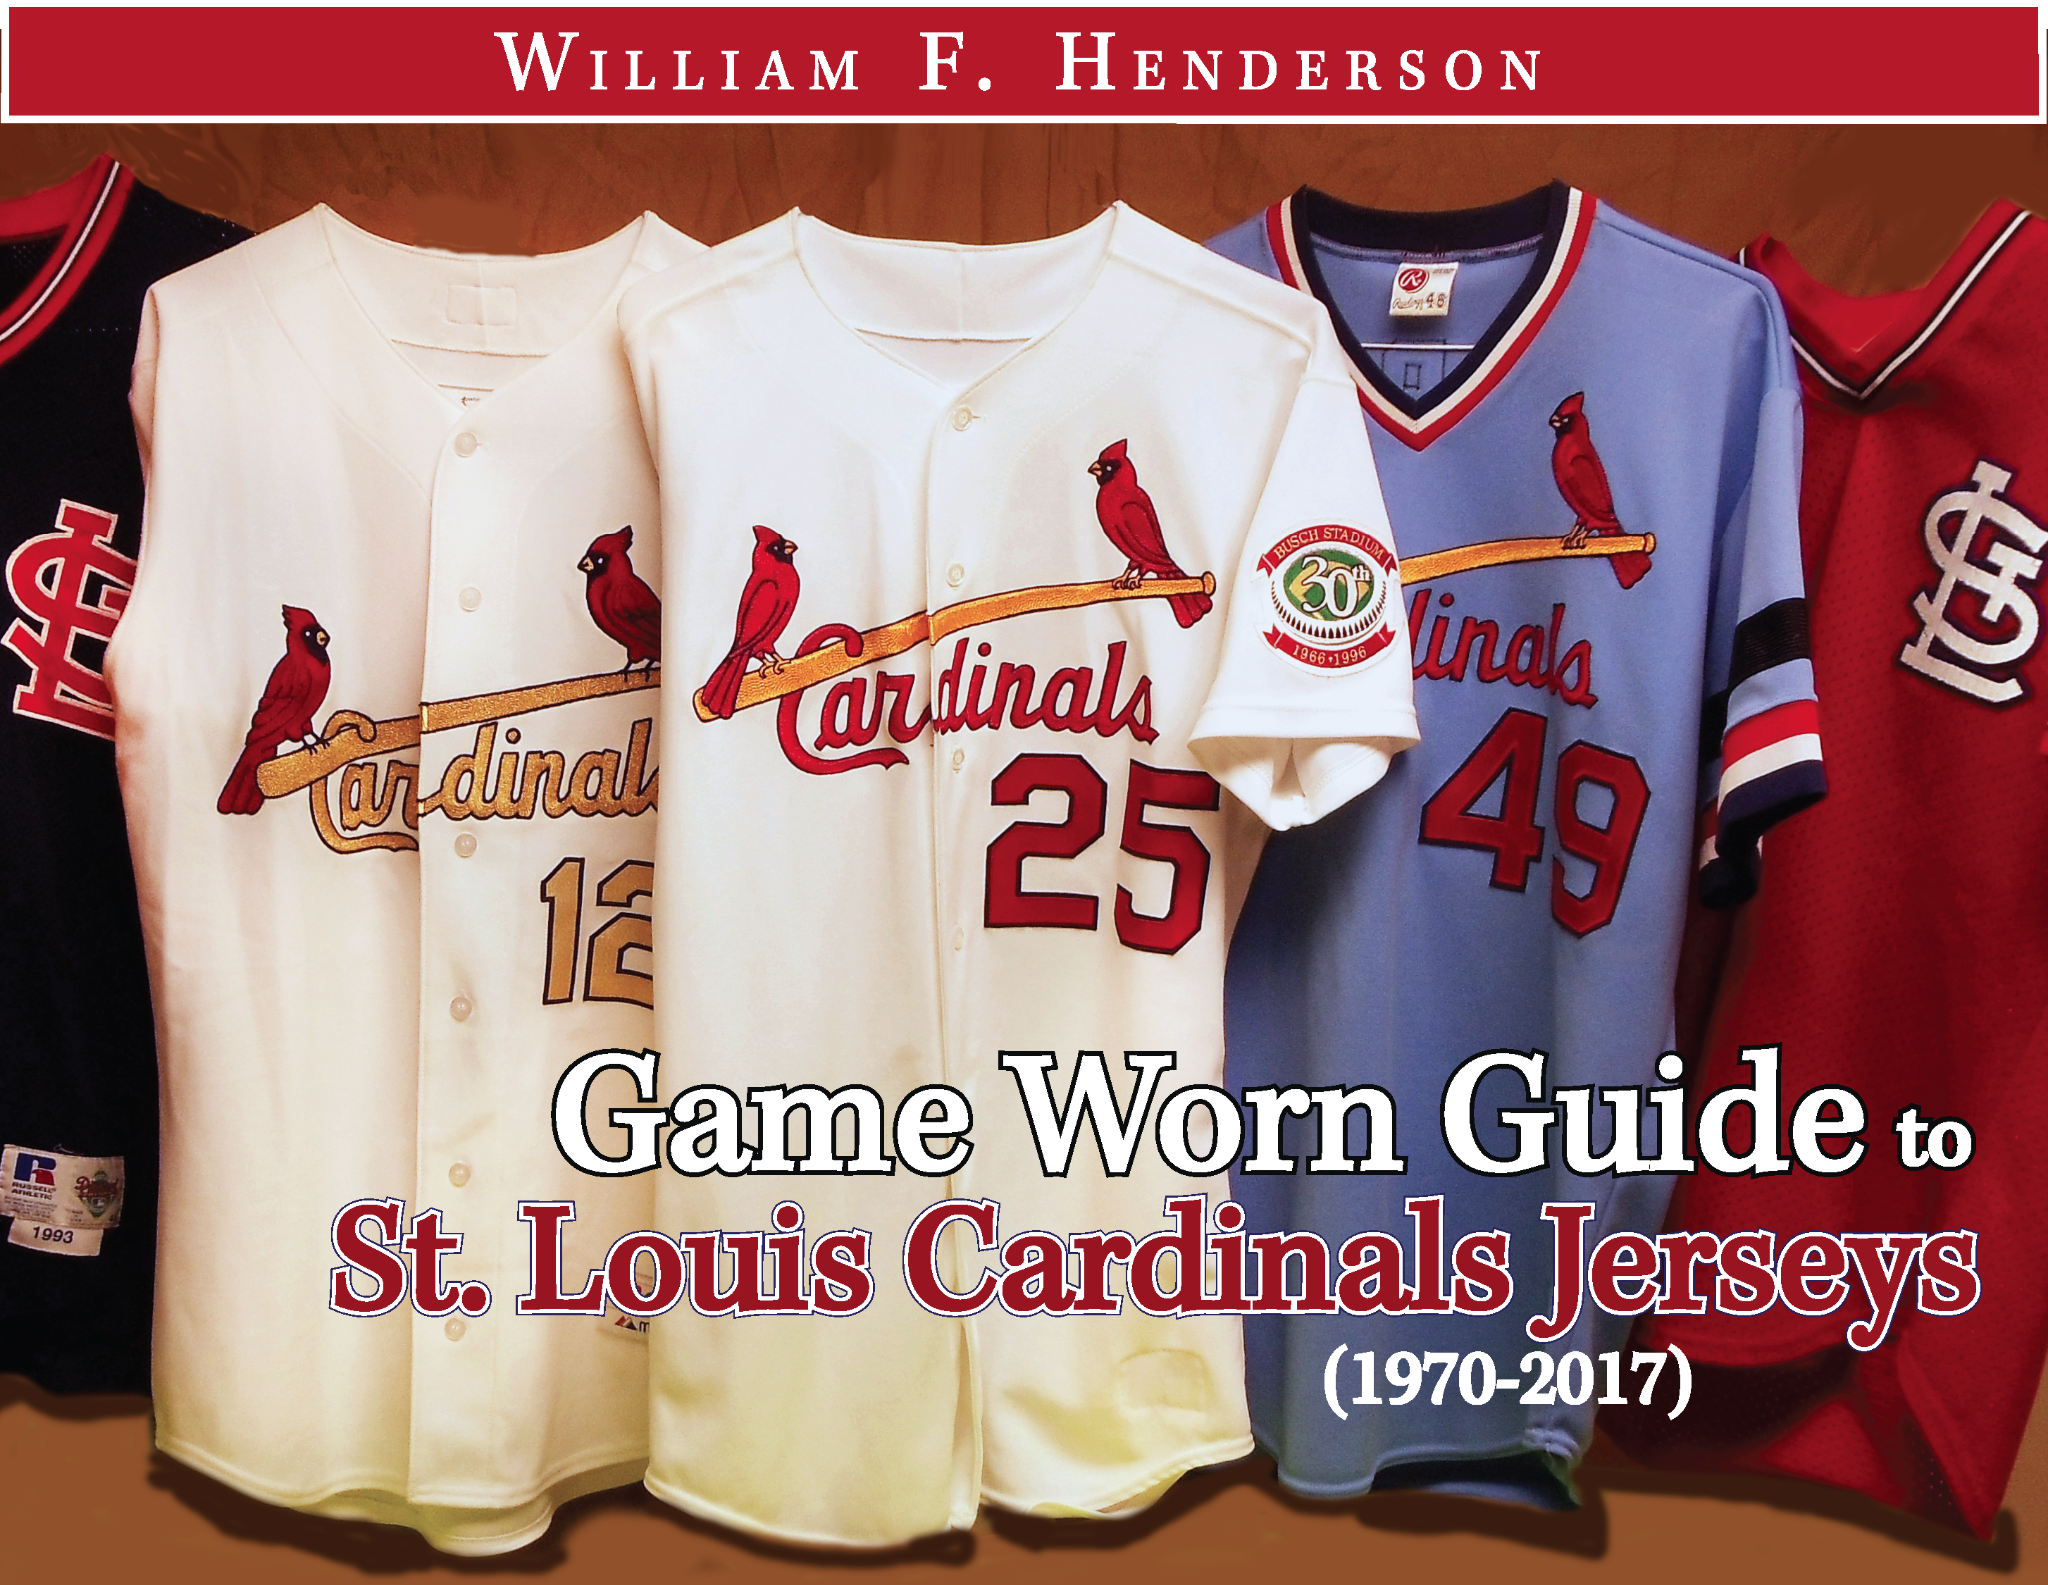 Game Worn Guide to St. Louis Cardinals Jerseys (1970-2017)